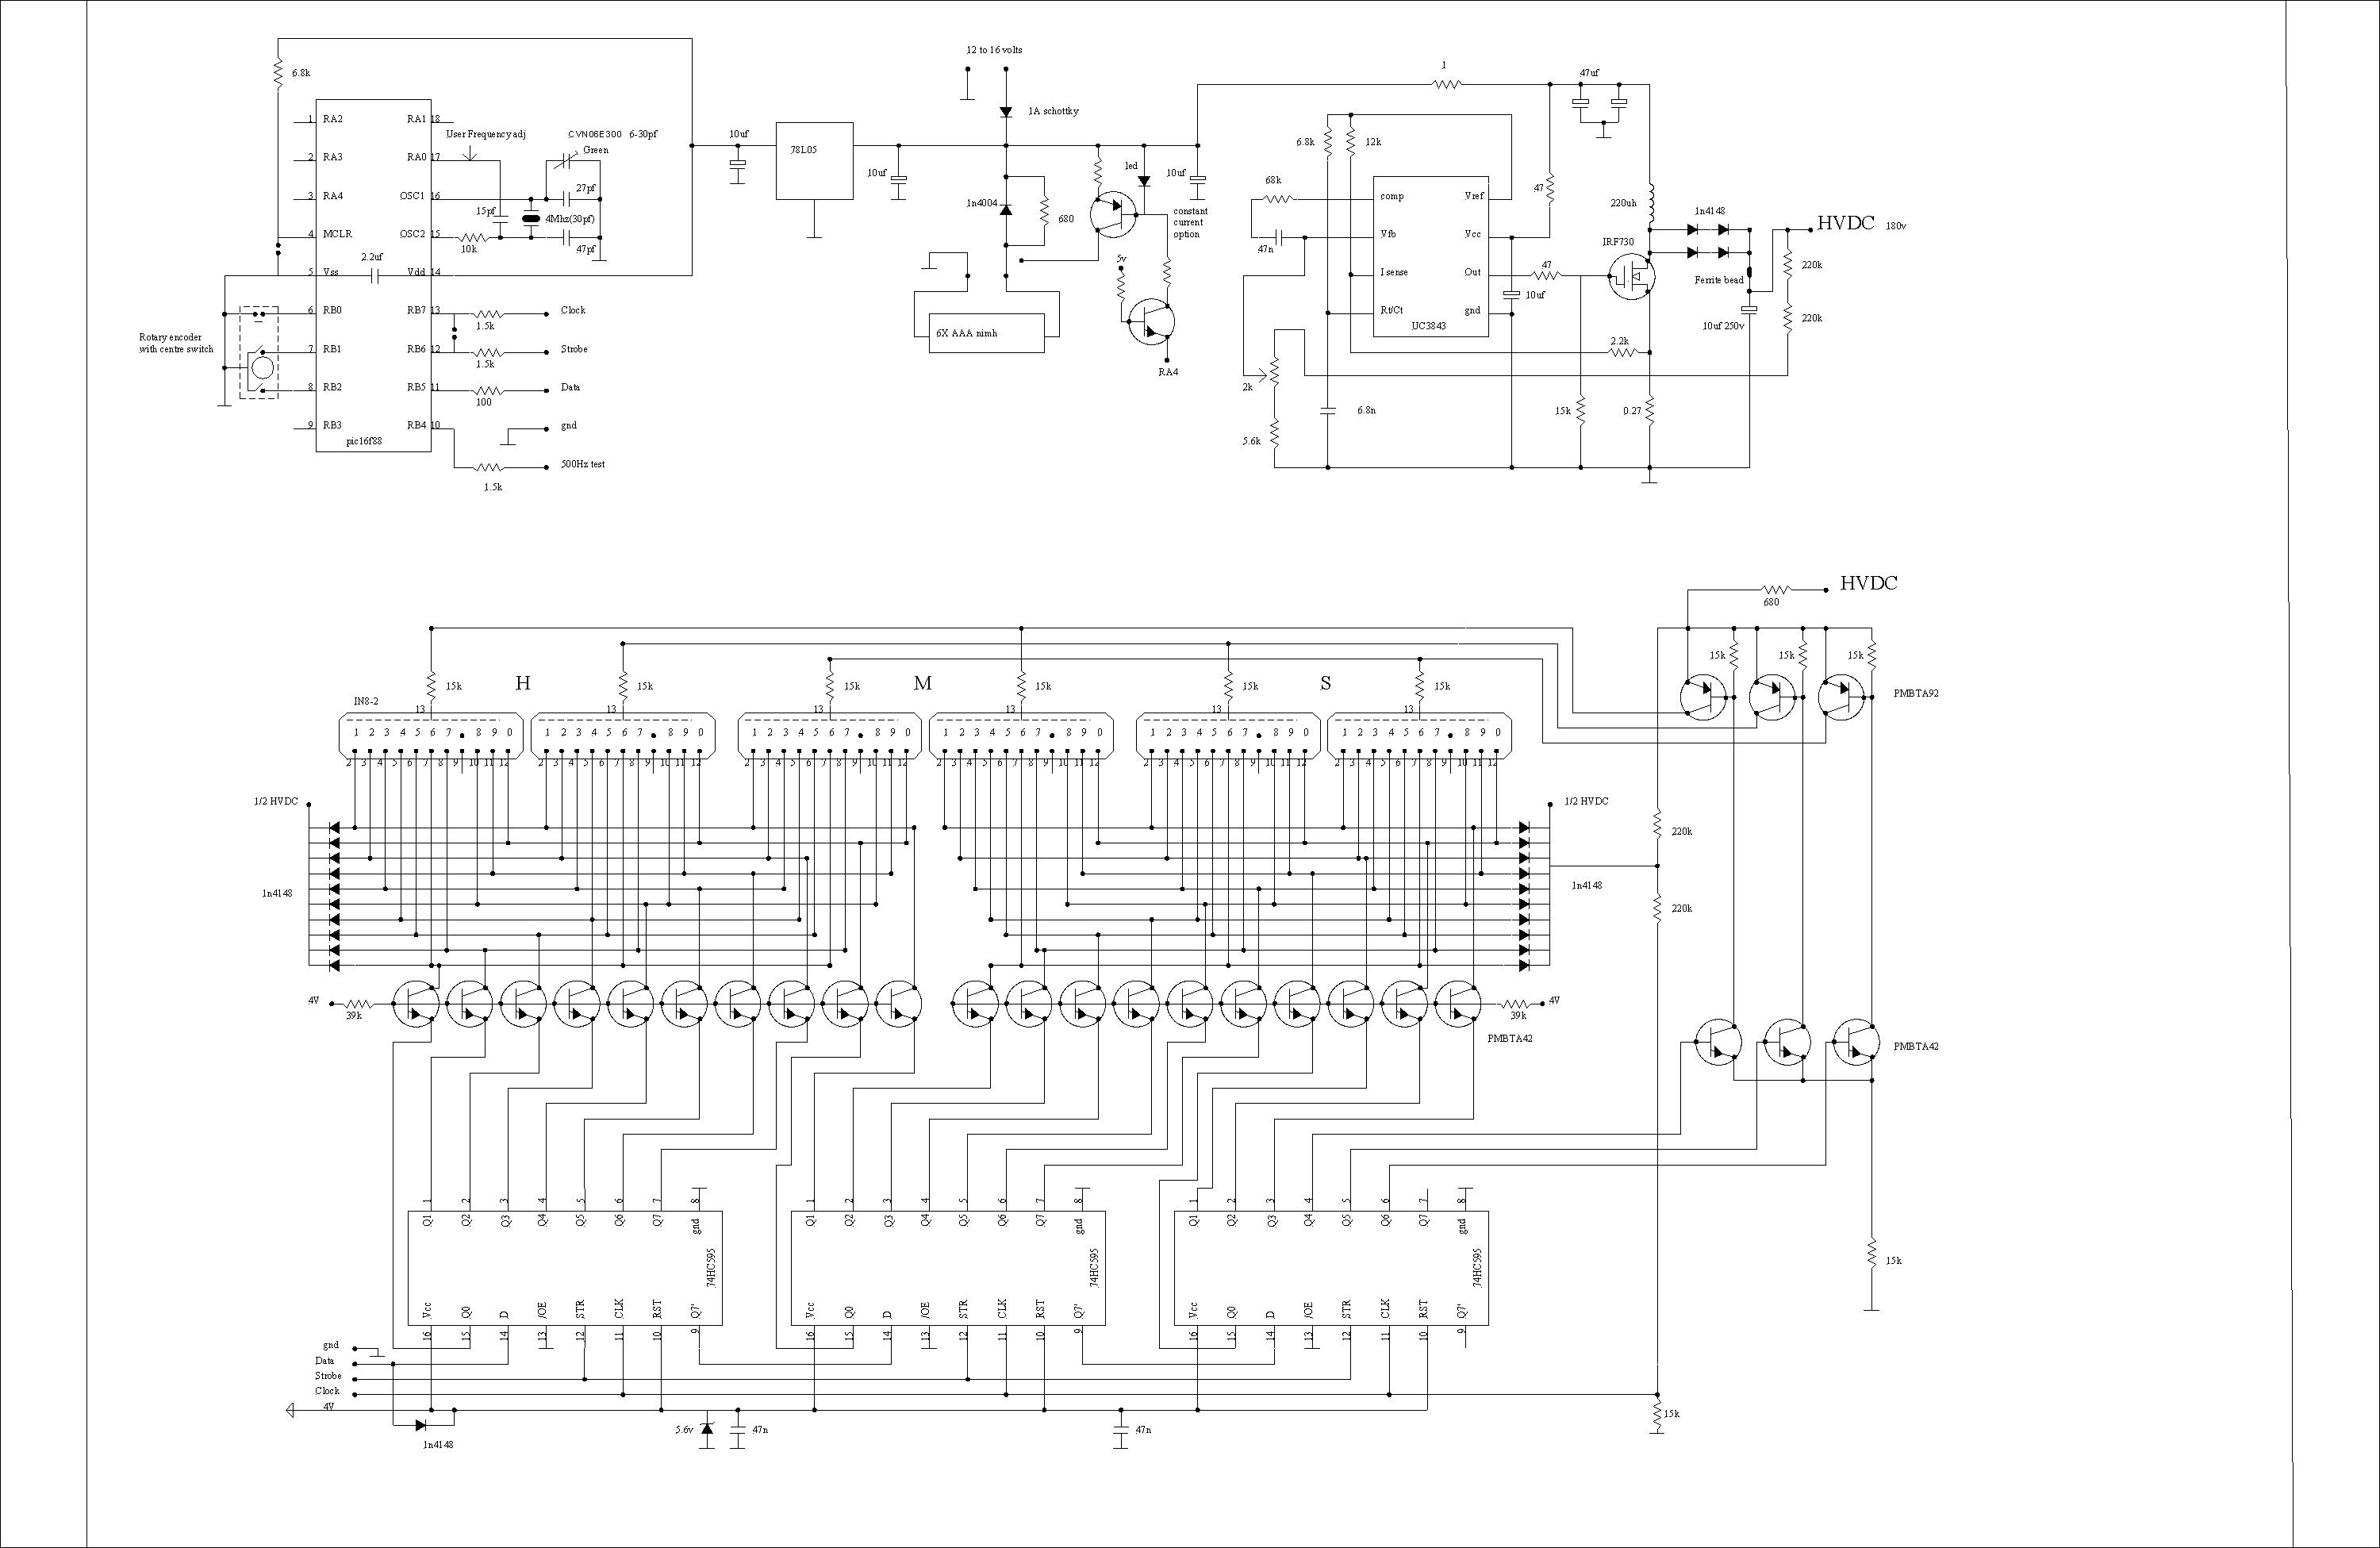 Russian 74141s And Non Exclusive Multiplexing Nixie Tube Schematic Page 1 I Use Constant Current Drive To The Anode Transistors In My Clock Although Npn Is Still Positive Logic